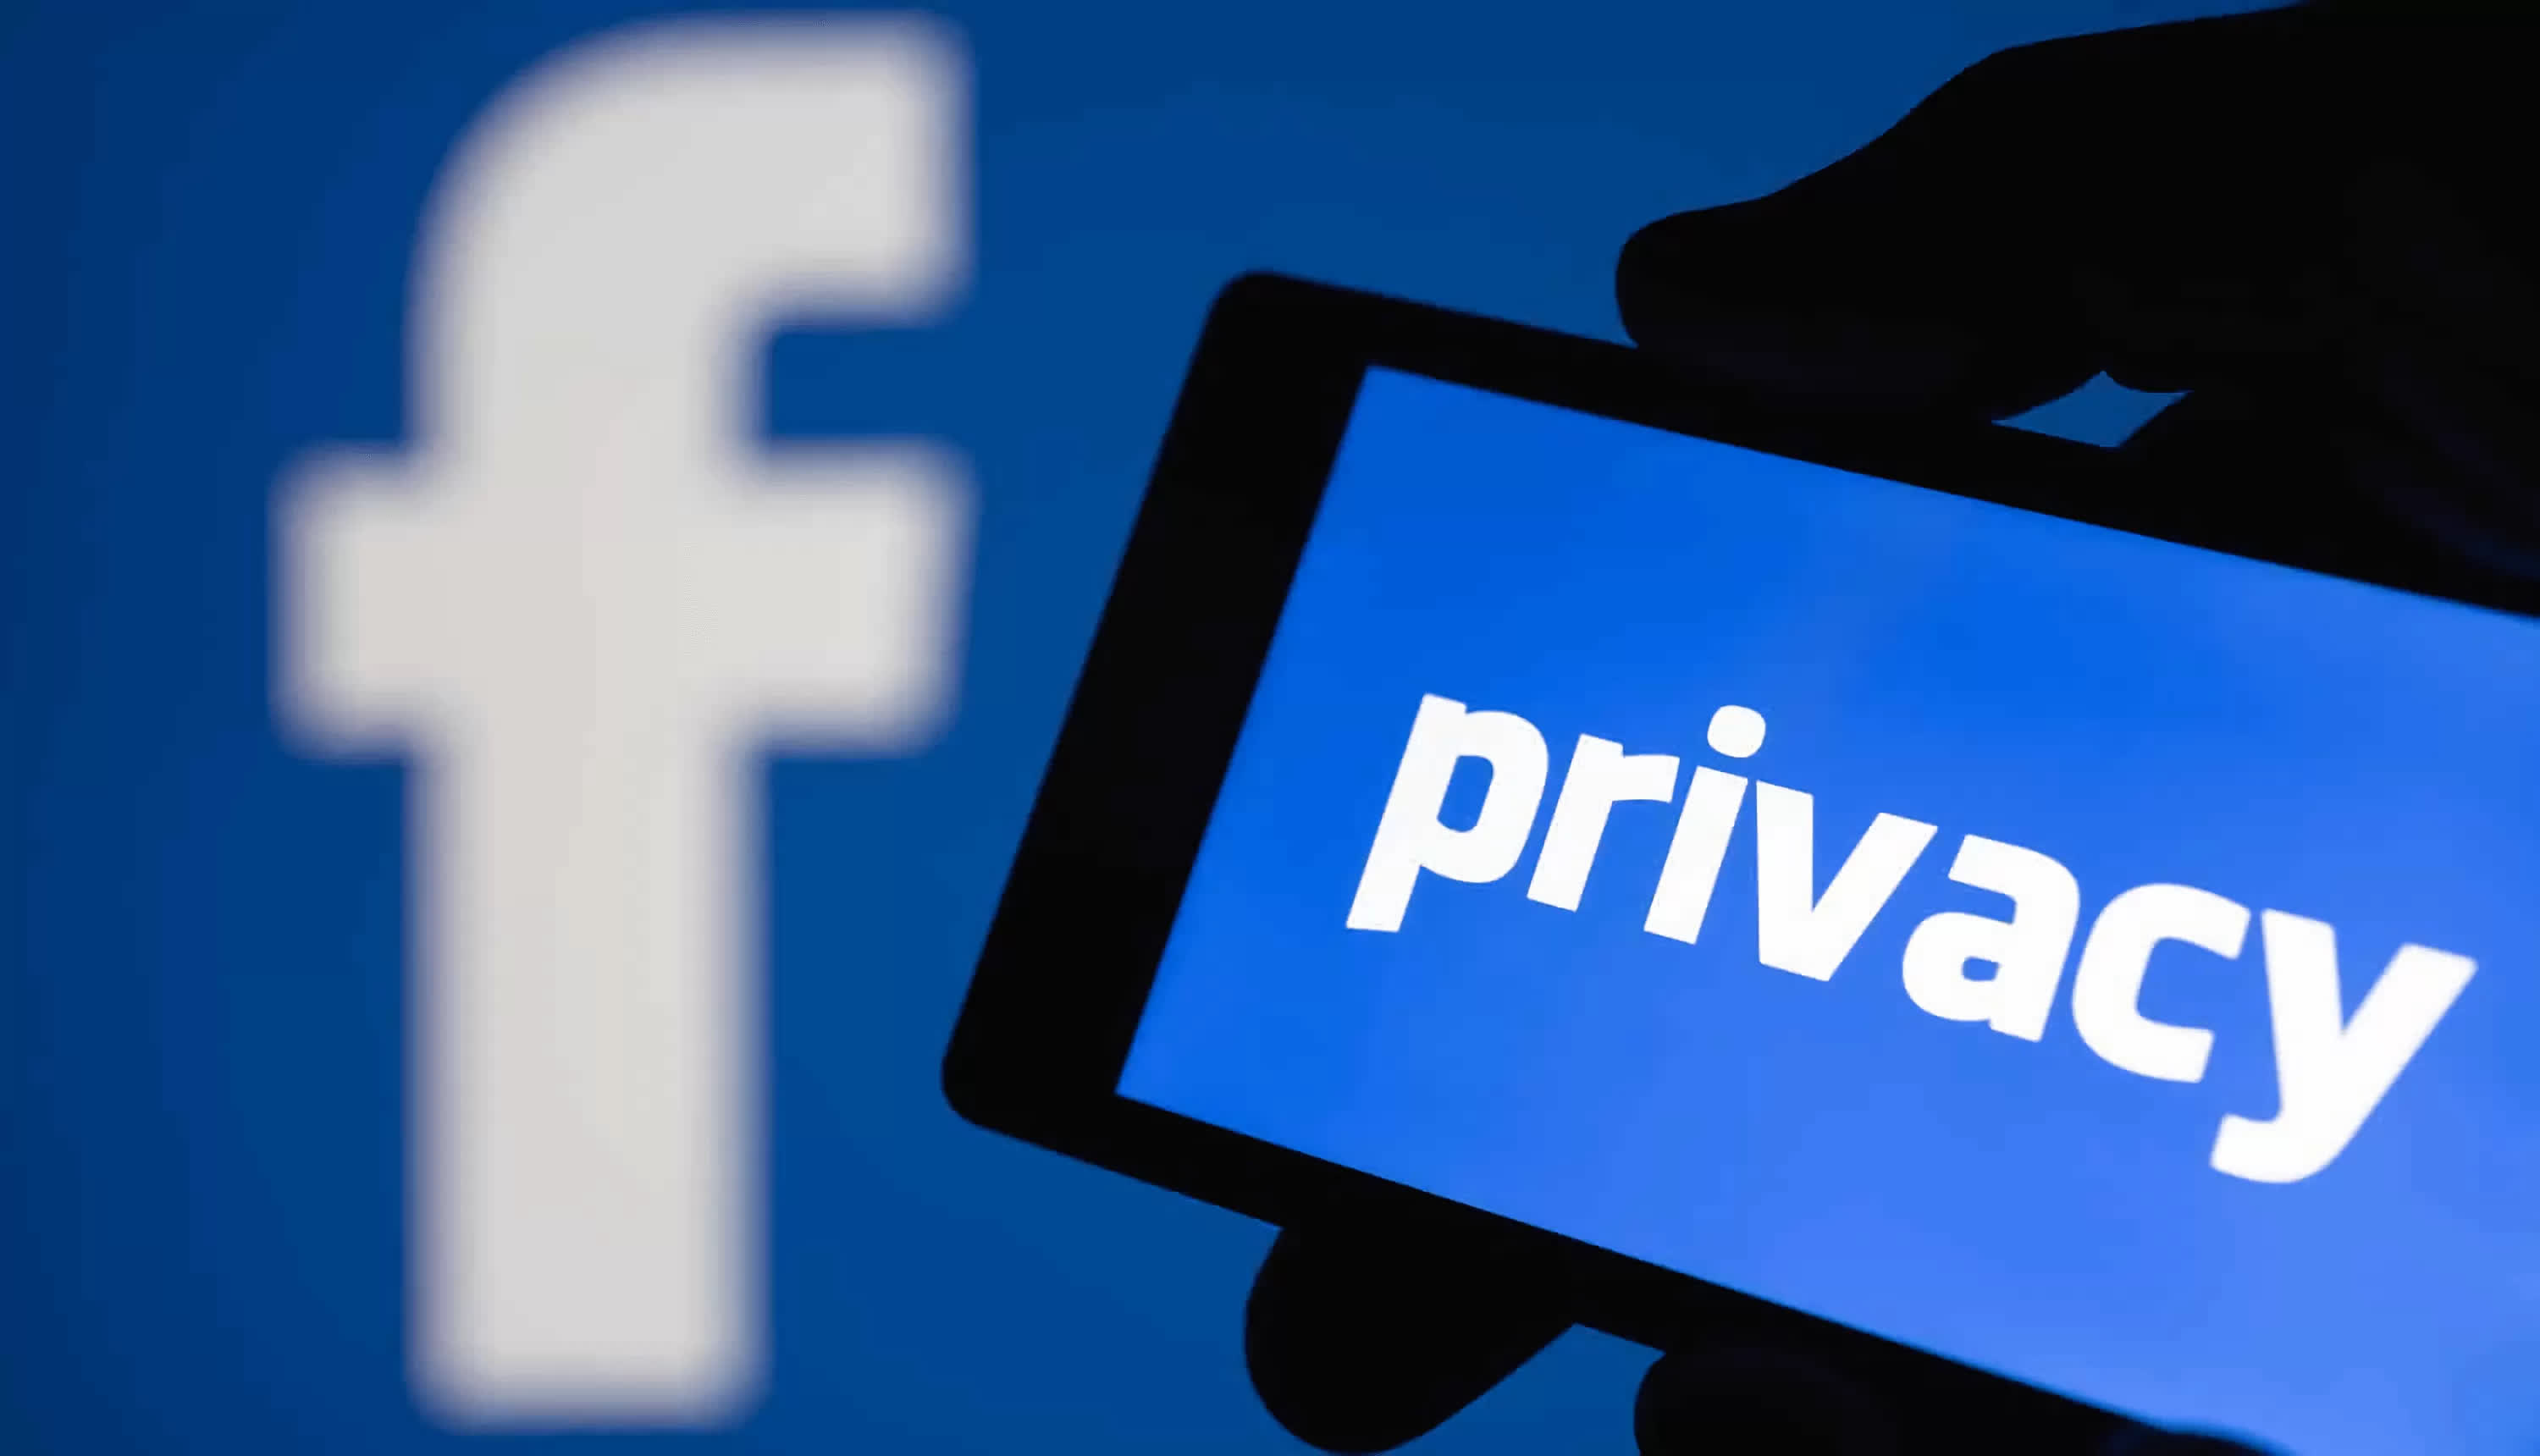 How can you check if your phone number is included in the Facebook data leak